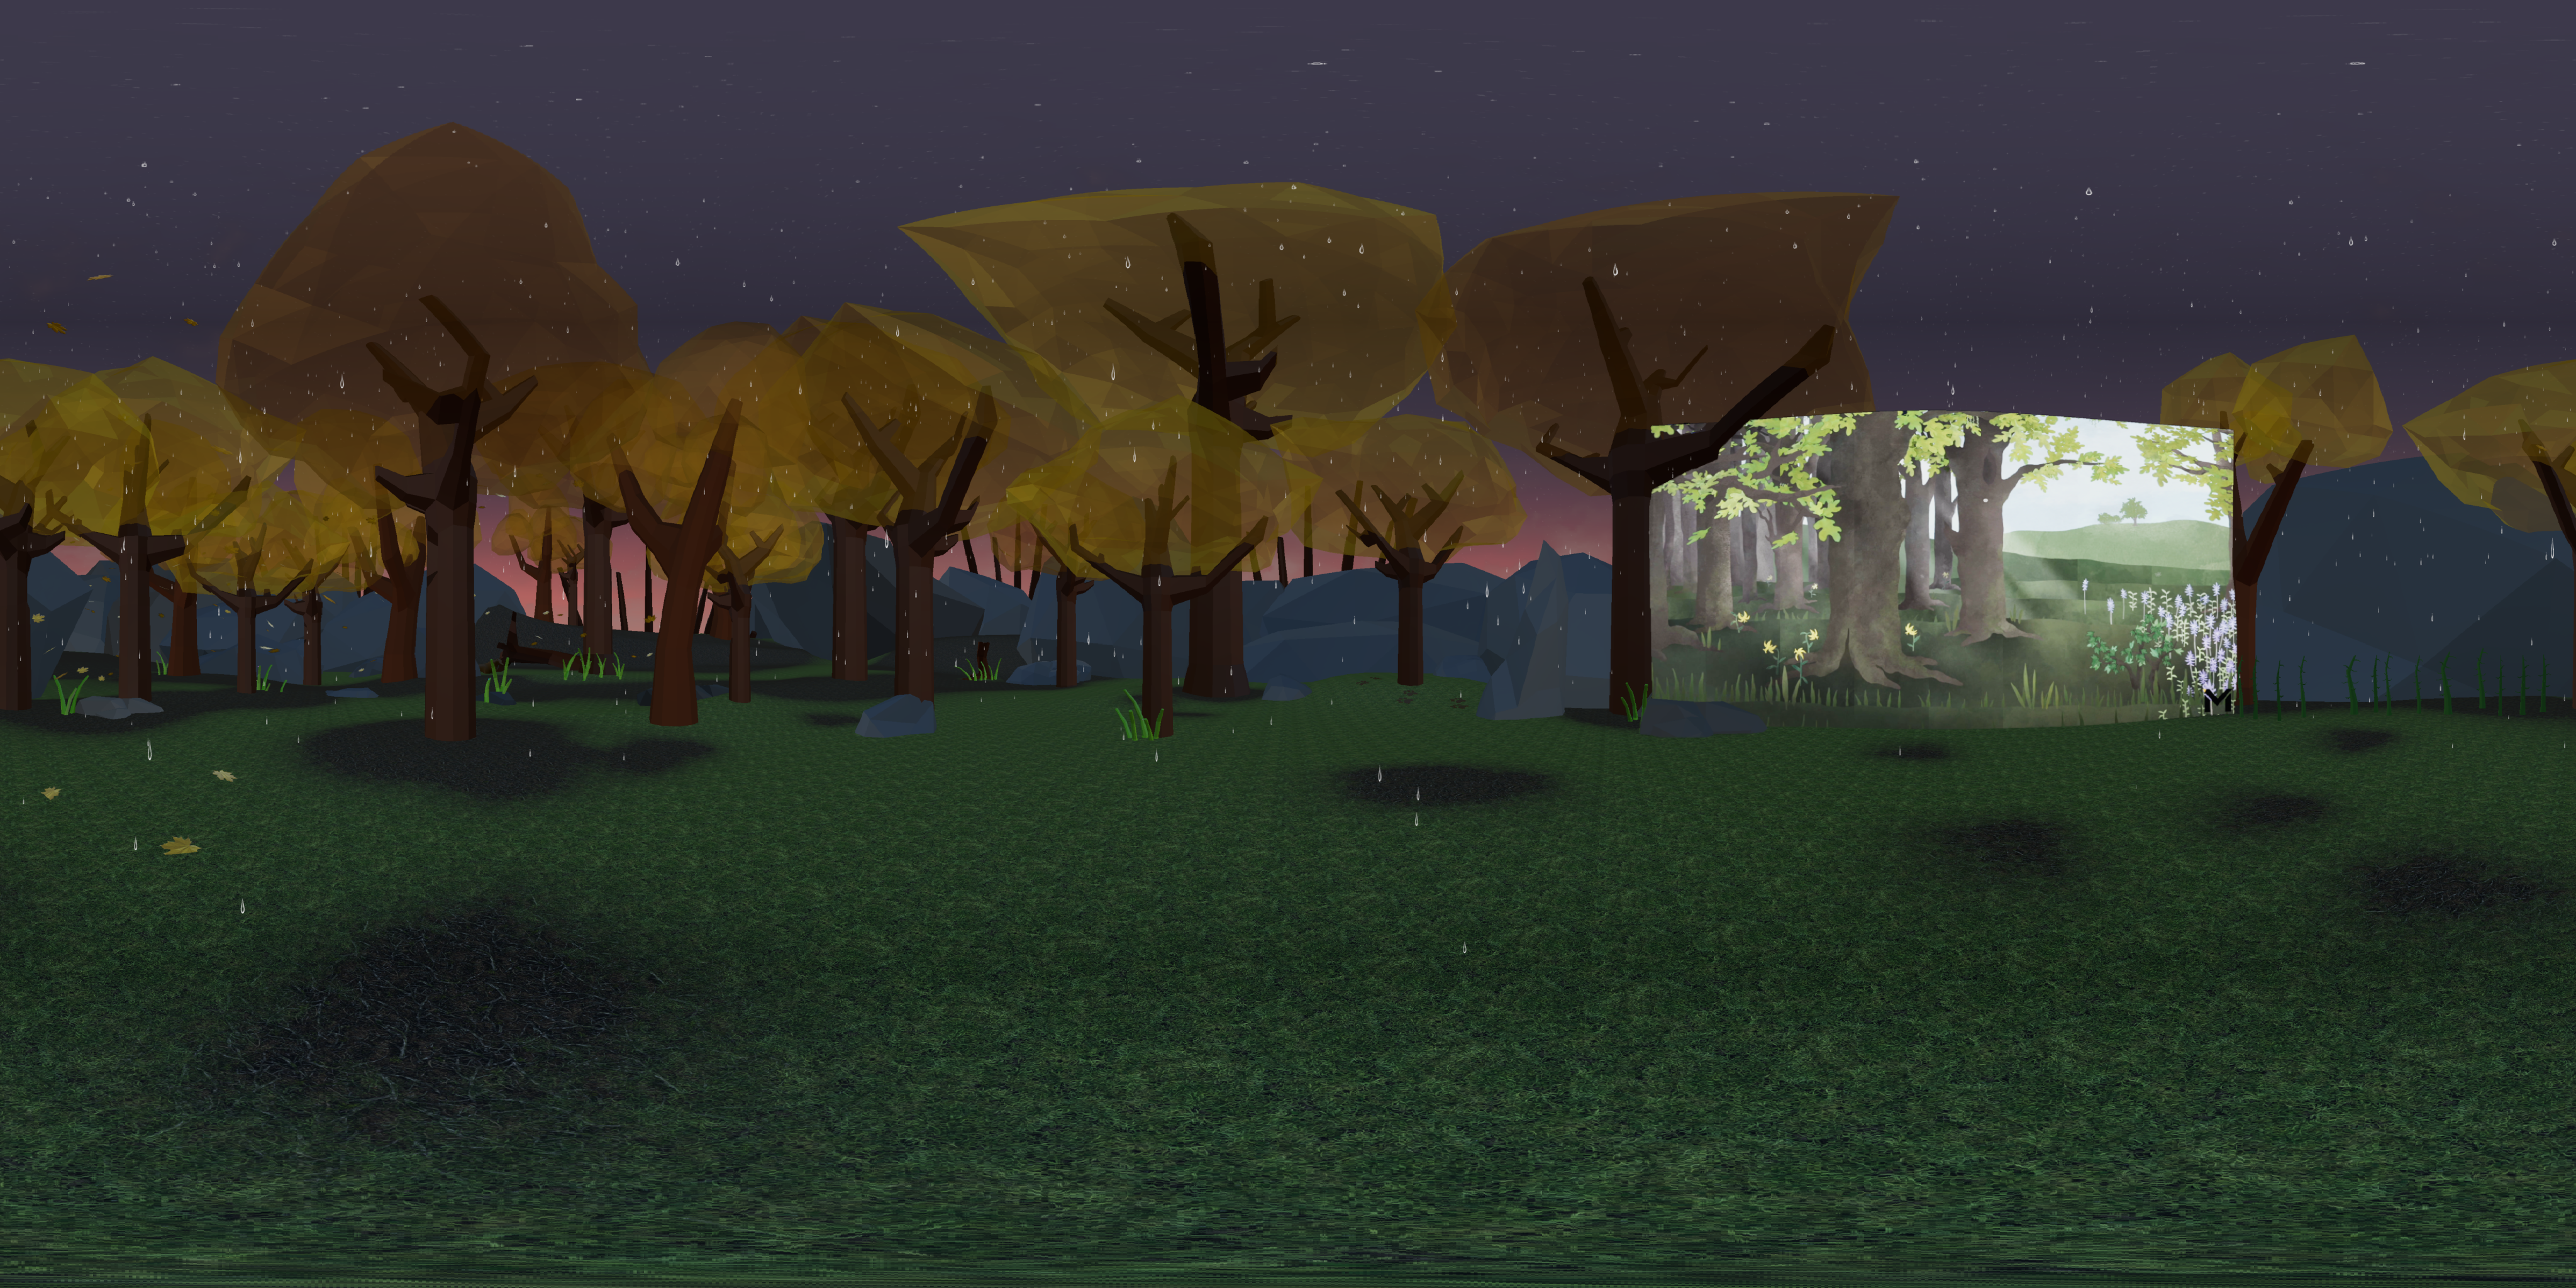 The virtual reality forest in Autumn